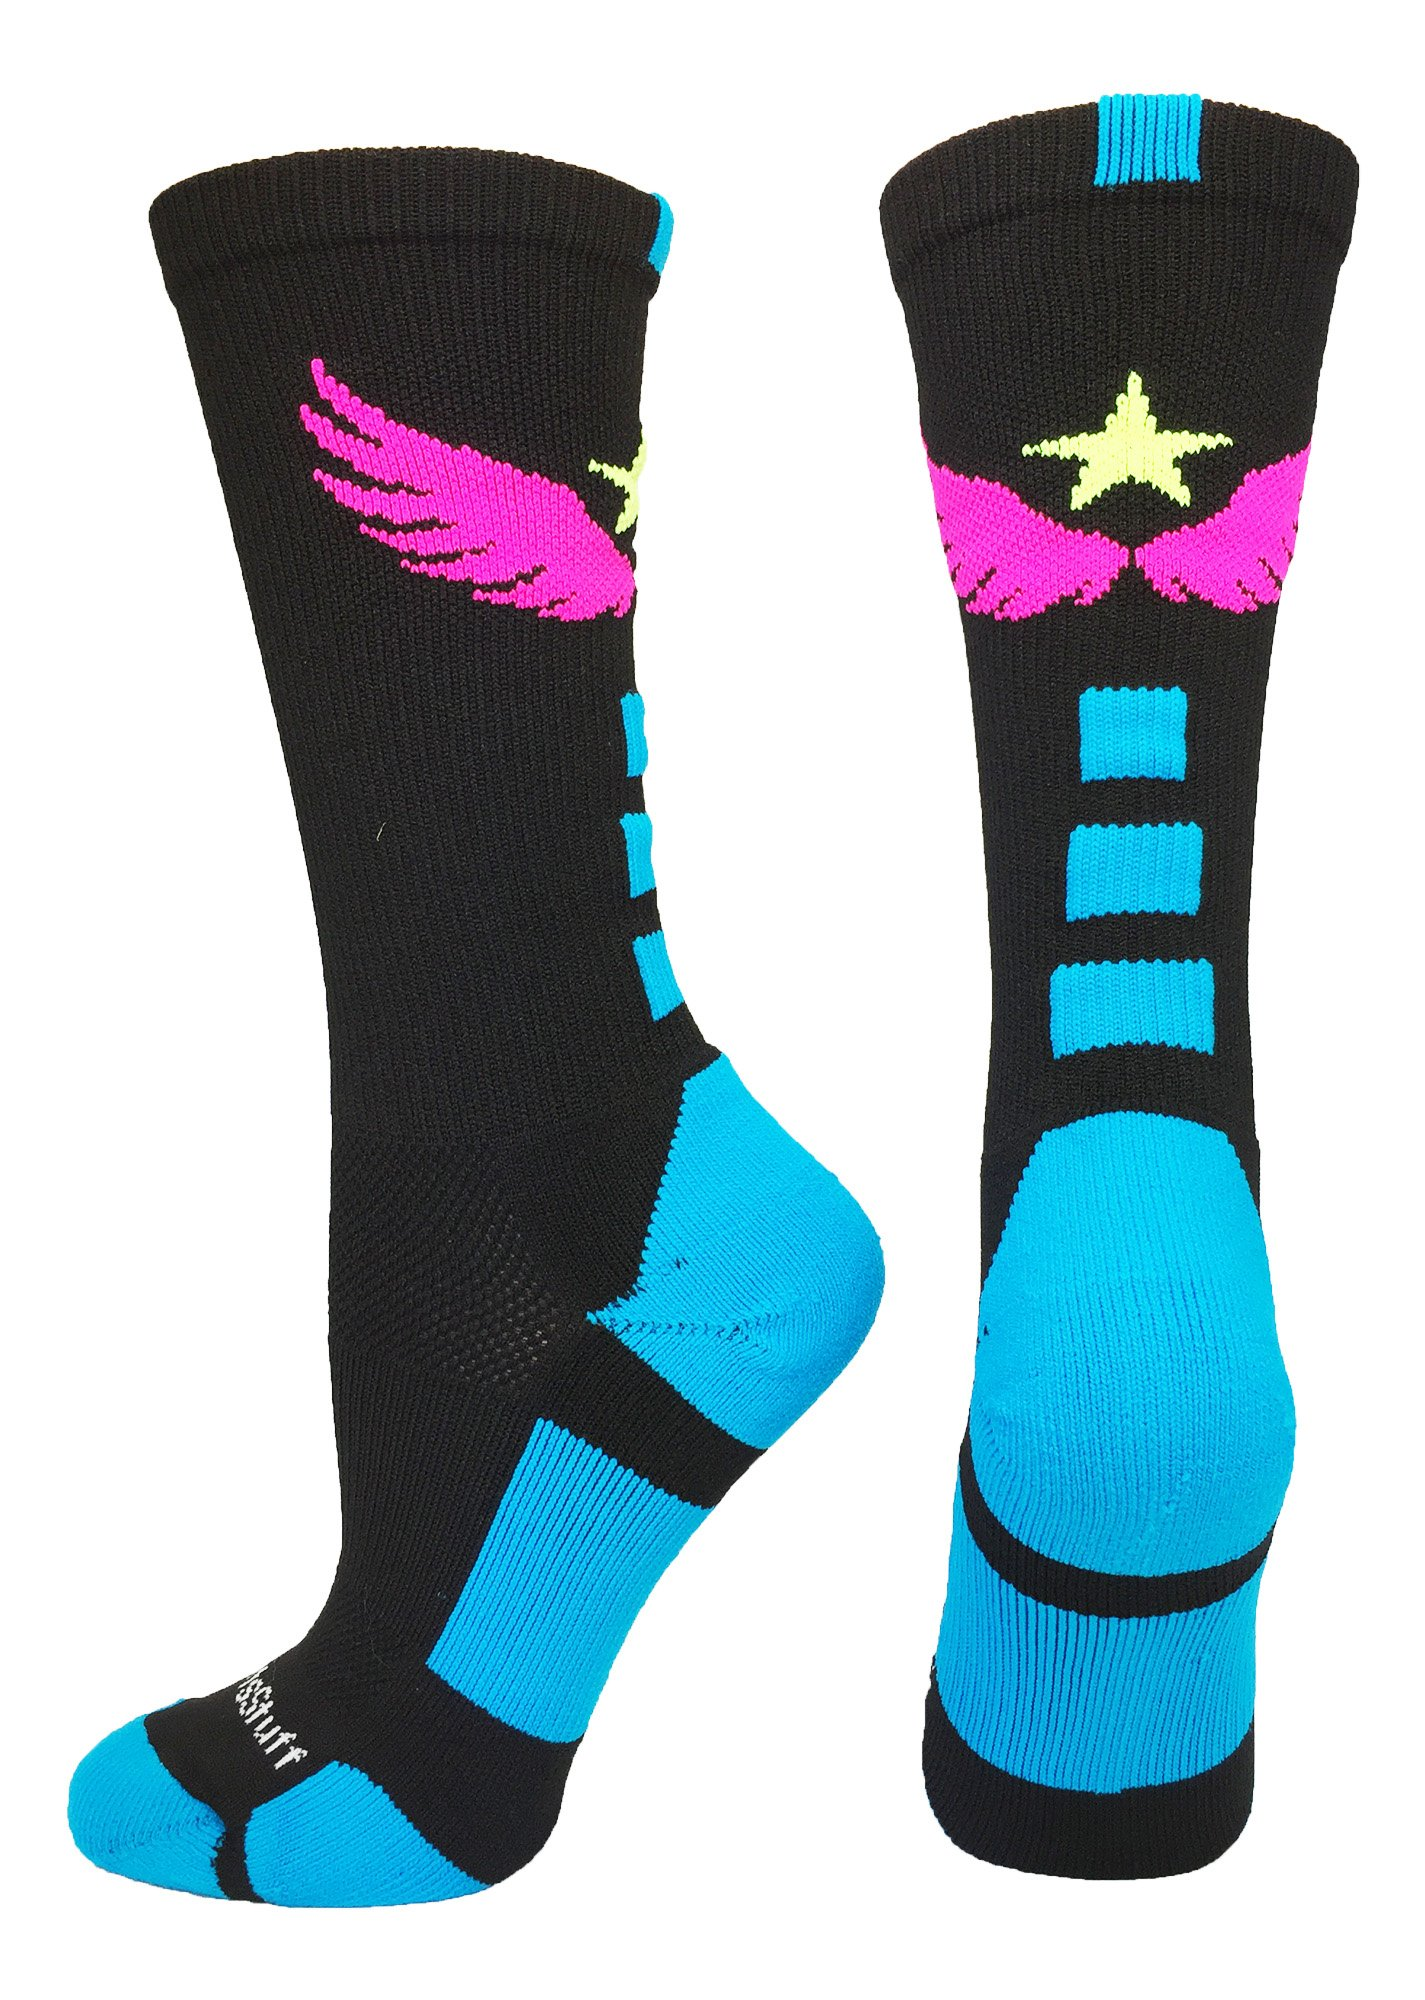 MadSportsStuff Light Speed Athletic Crew Socks (Black/Electric Blue/Neon Pink/Neon Yellow, Medium) by MadSportsStuff